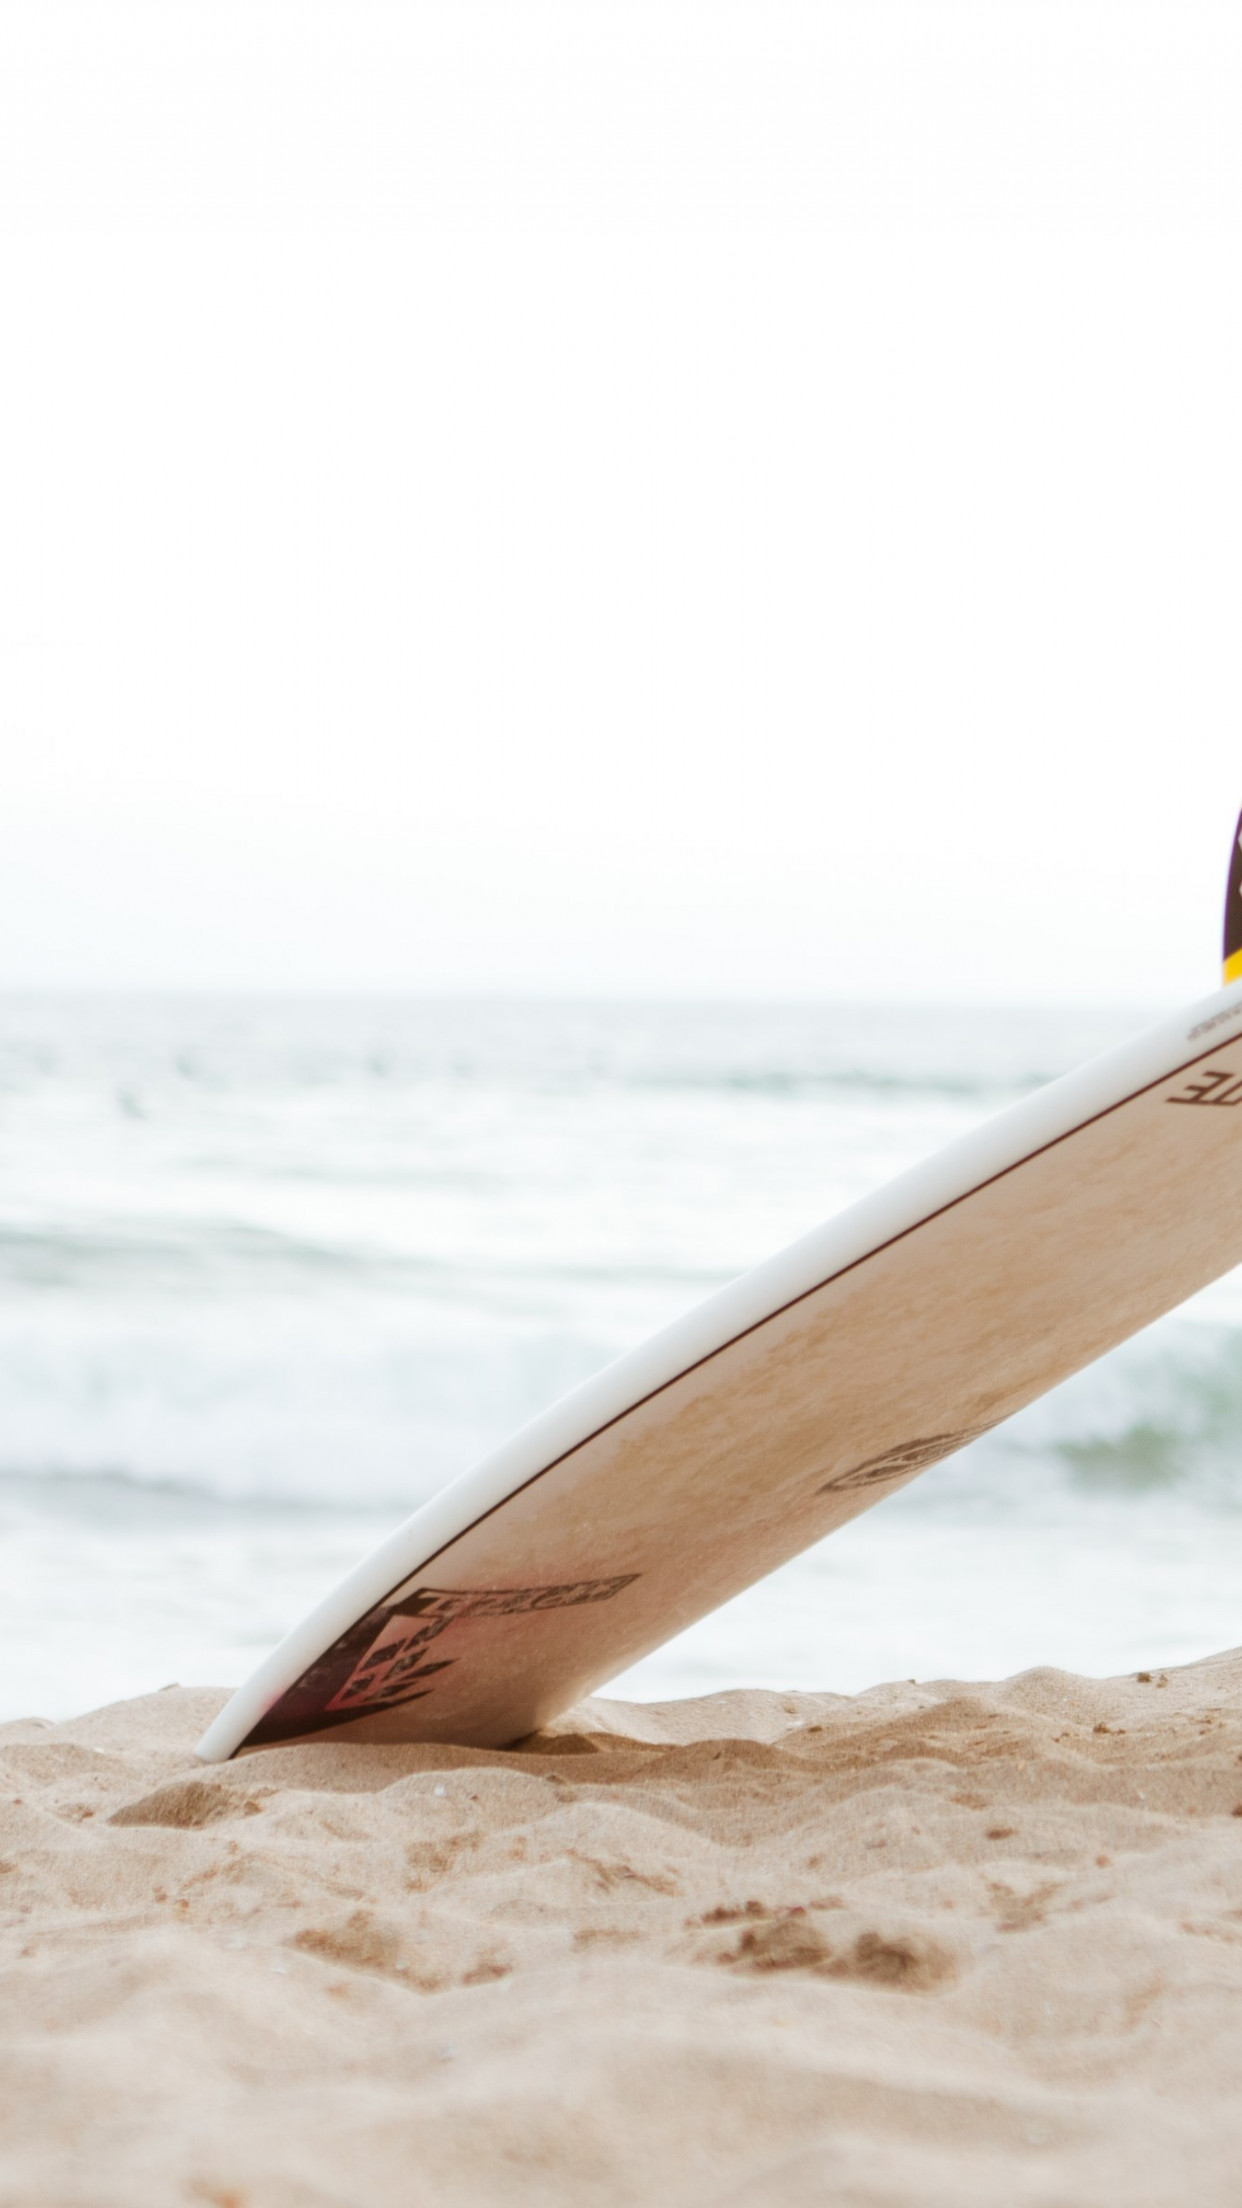 Surf board on the beach | 1242x2208 wallpaper